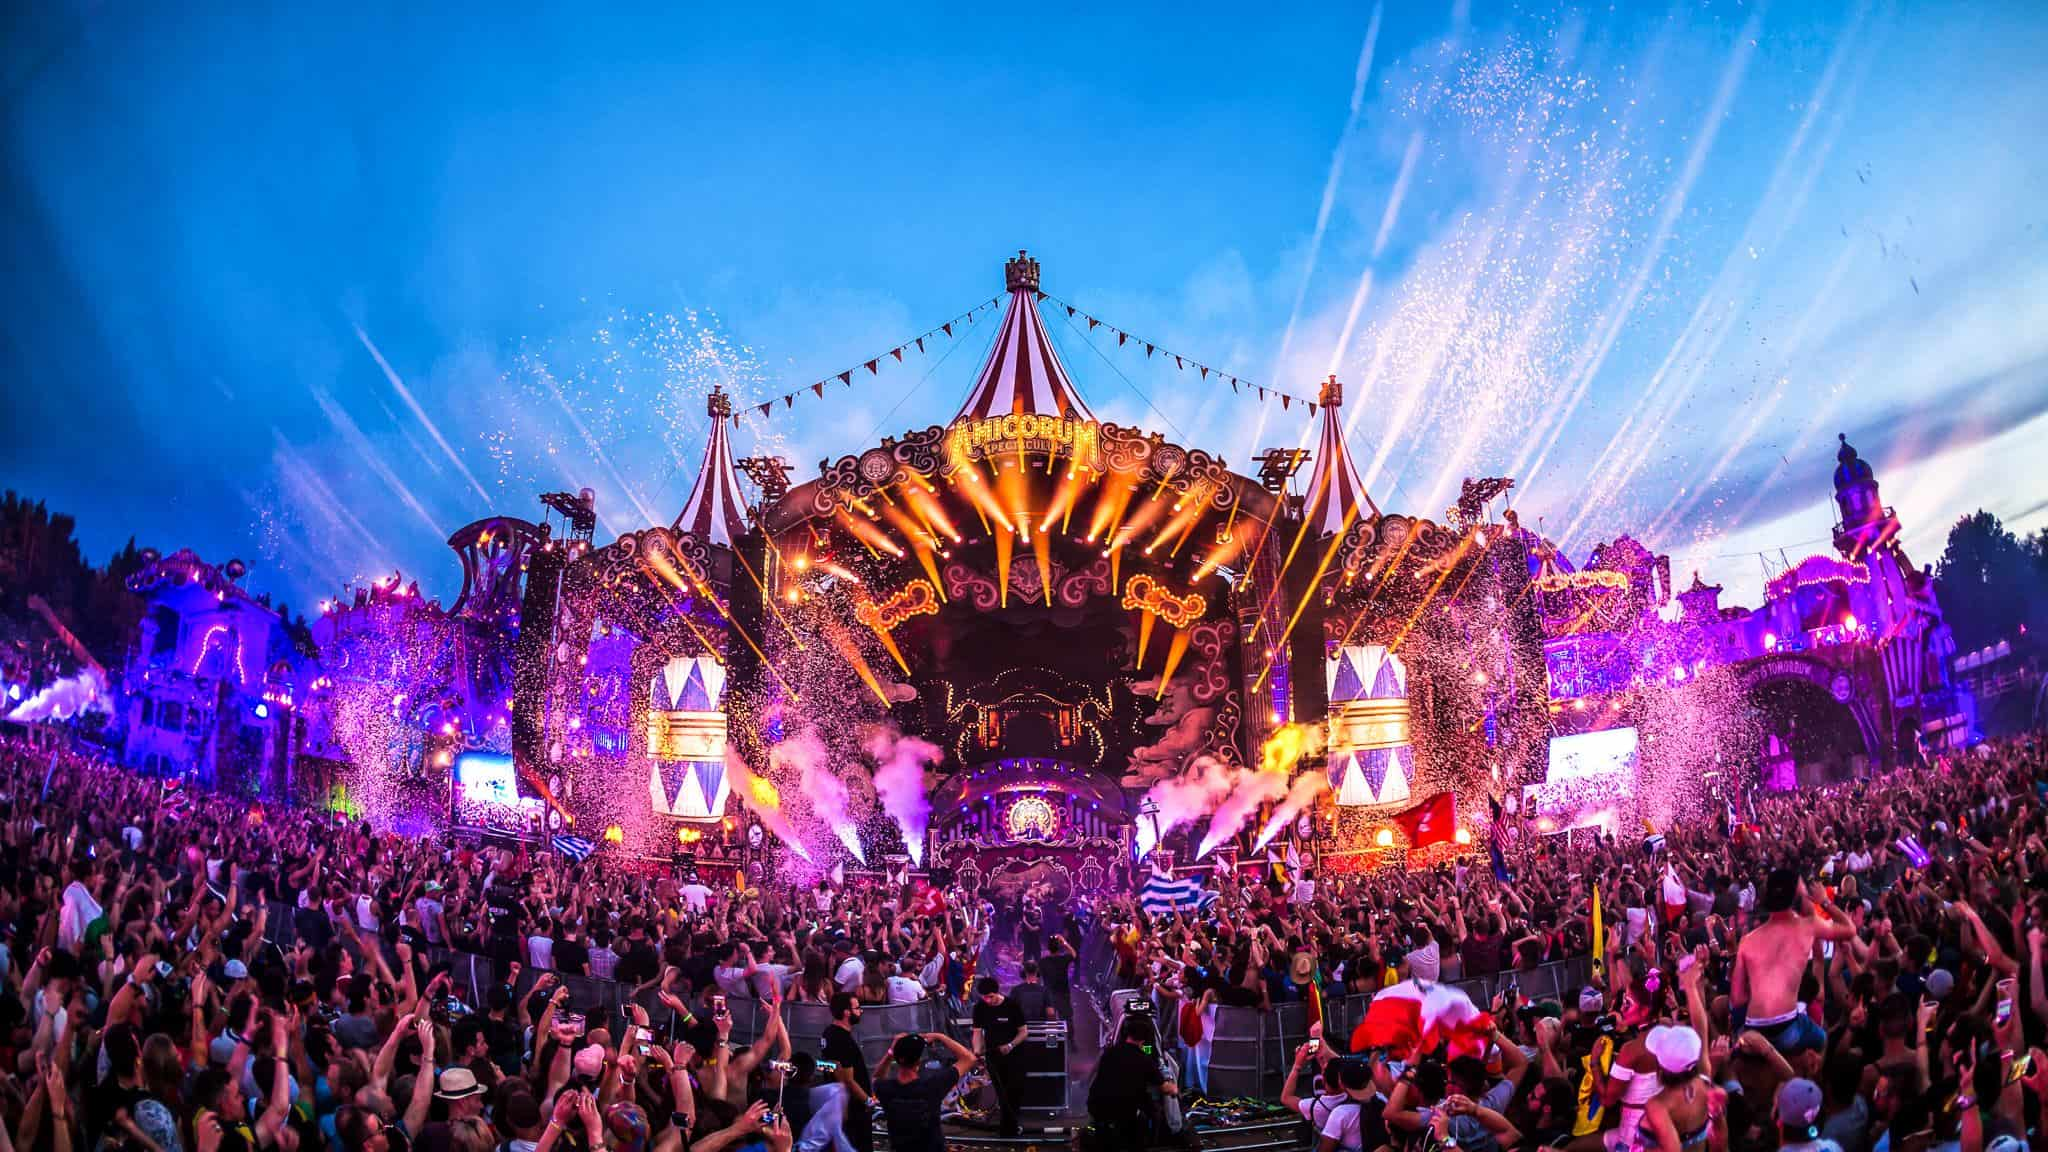 A crowd dancing at the Tomorrowland main stage